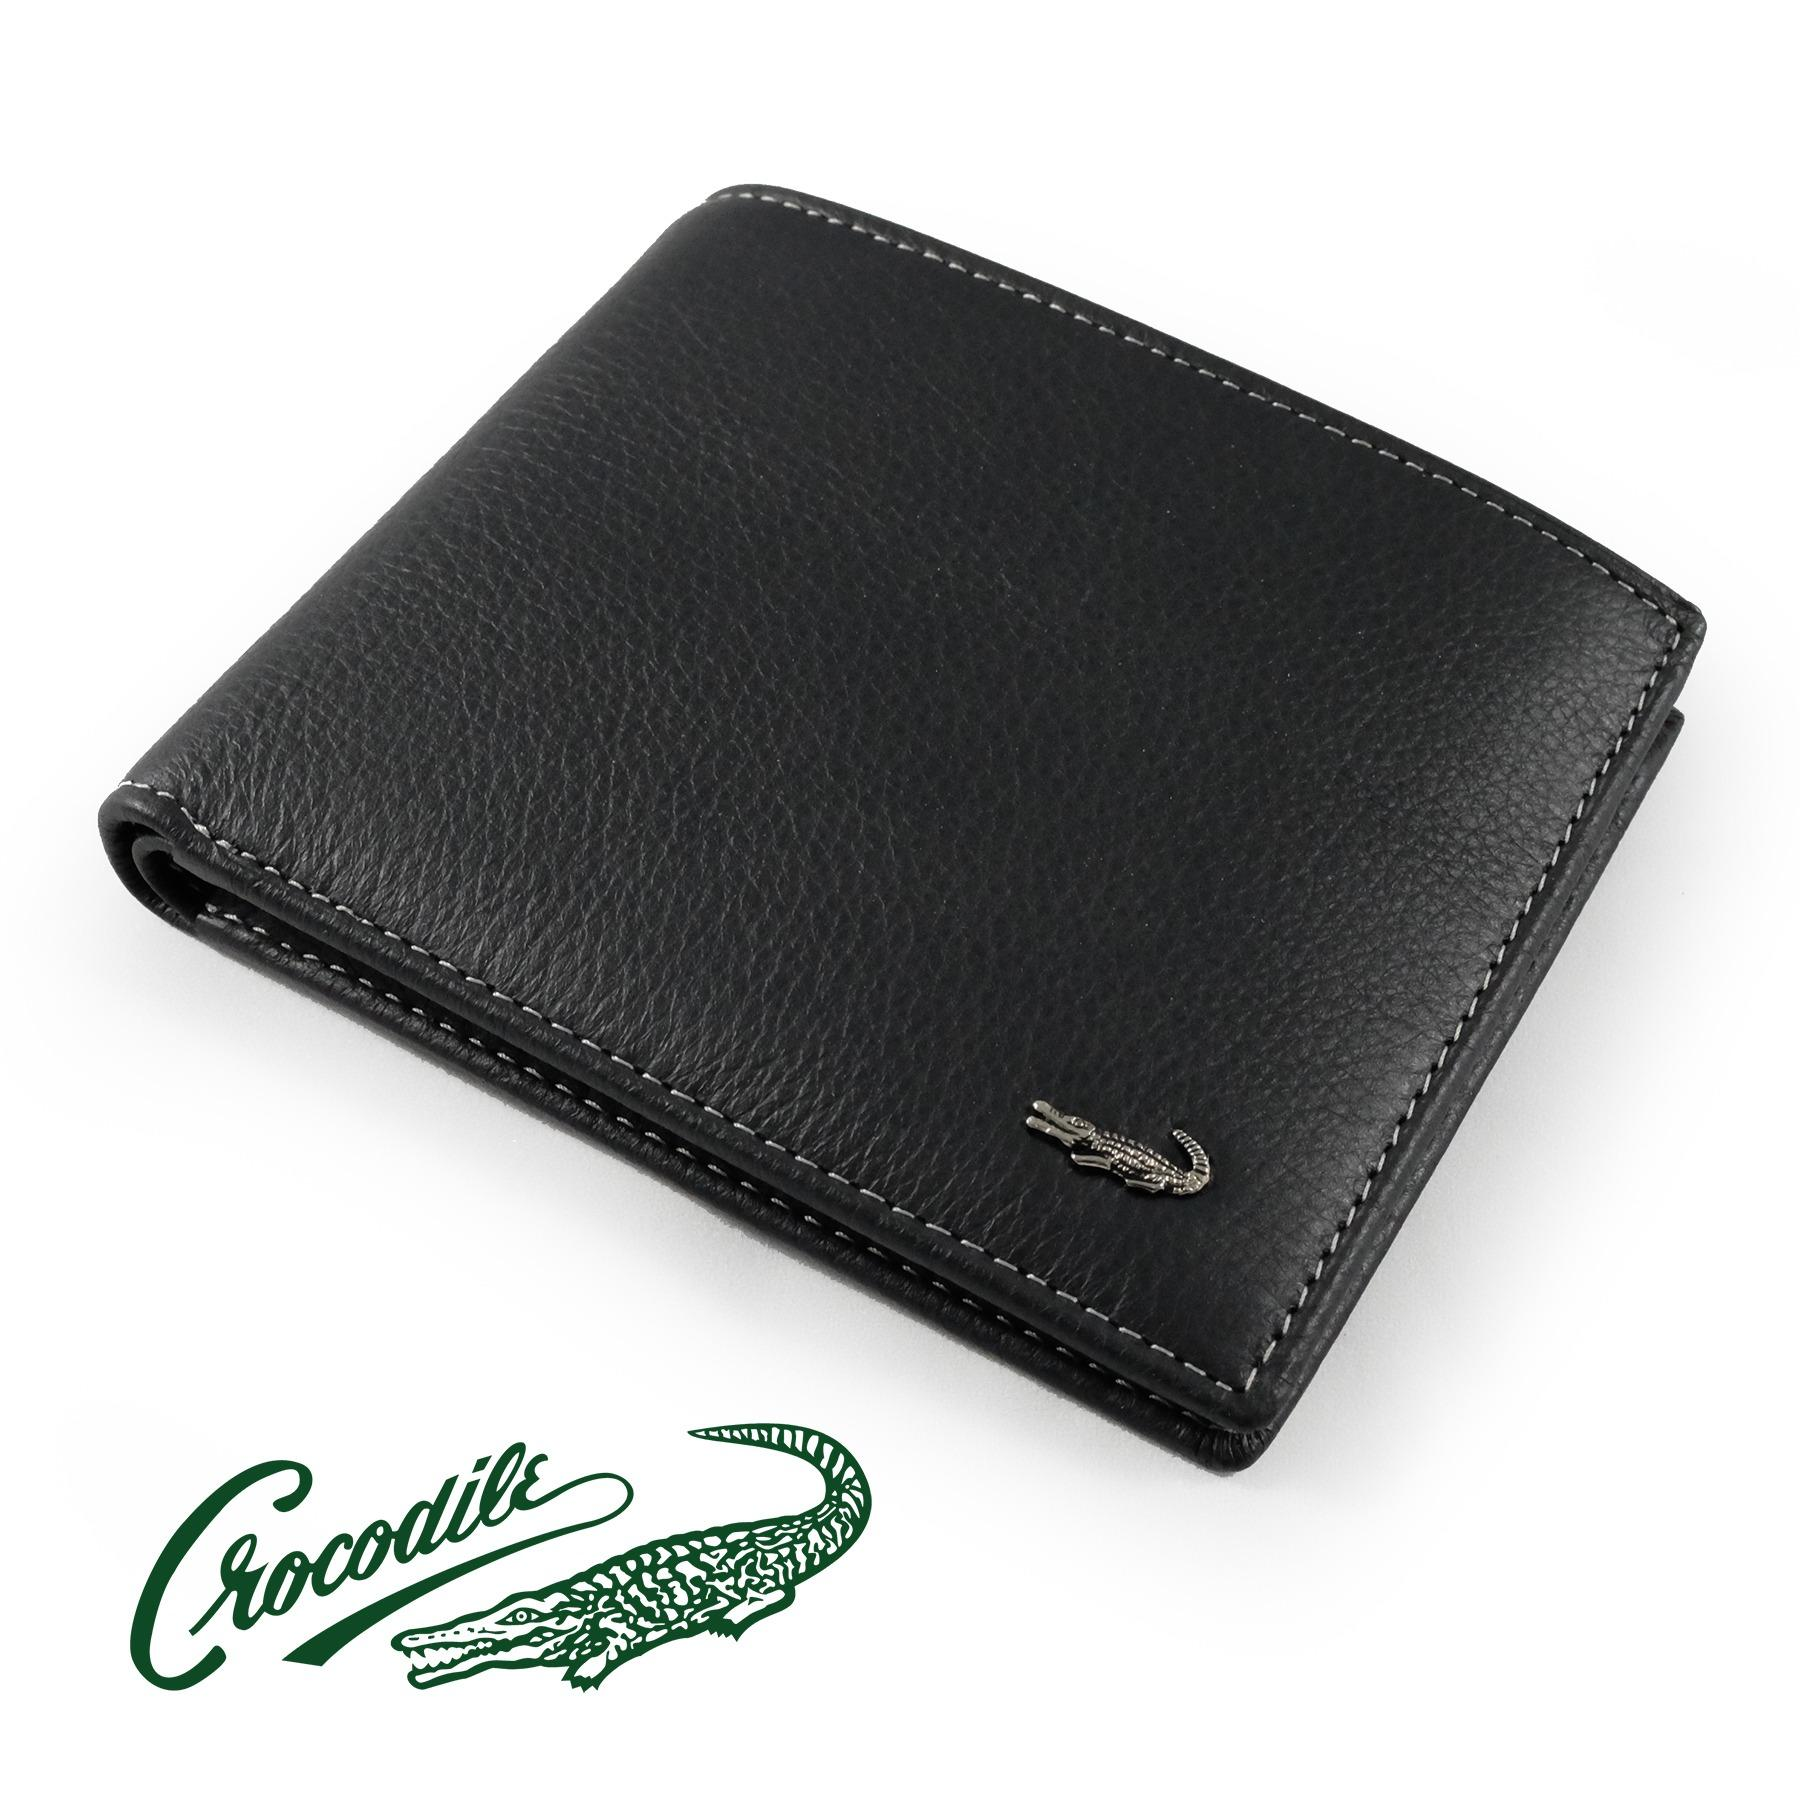 0203-11011 Dompet Pria Men Wallet Leather Kulit Crocodile Original